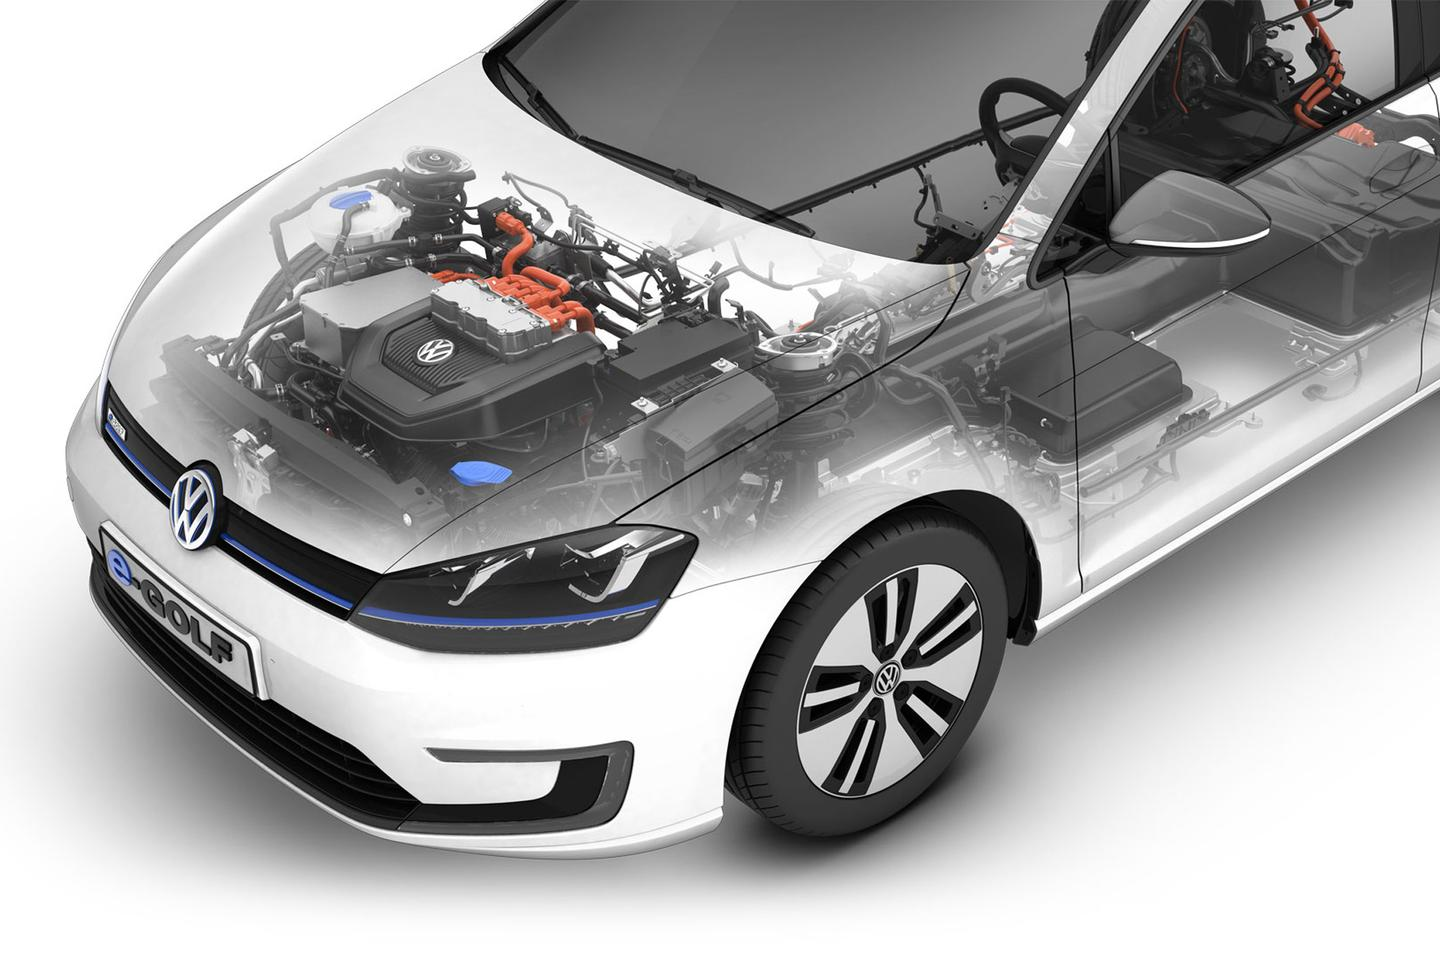 The e-Golf uses an 85 kW (114 hp) electric motor paired up to a 24.2 kWh lithium ion battery